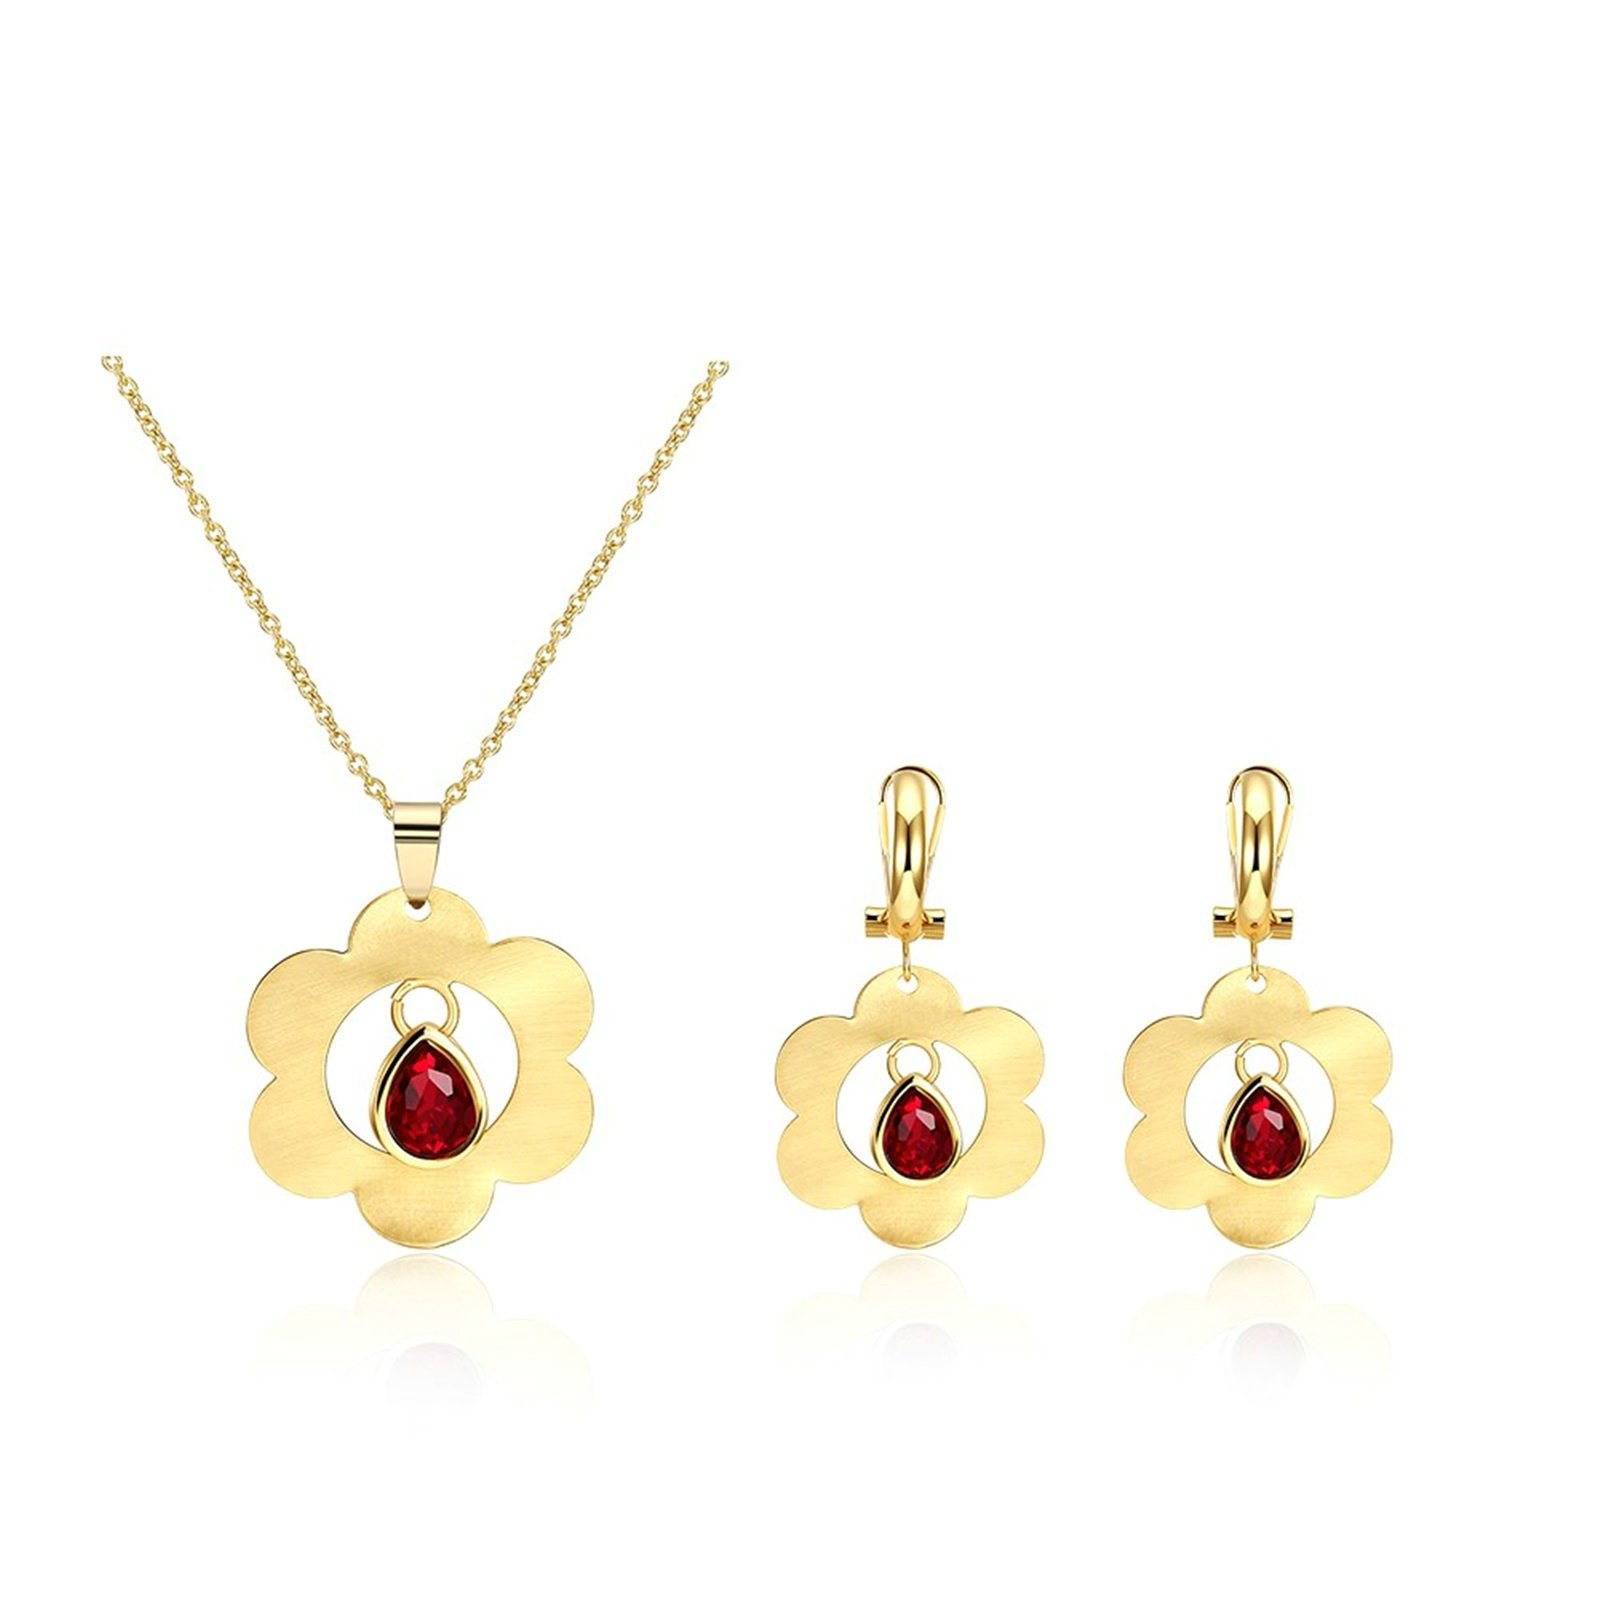 MoAndy Fashion Jewelry Set For Women Necklace Earrings The Flower Shaped Cz Gold